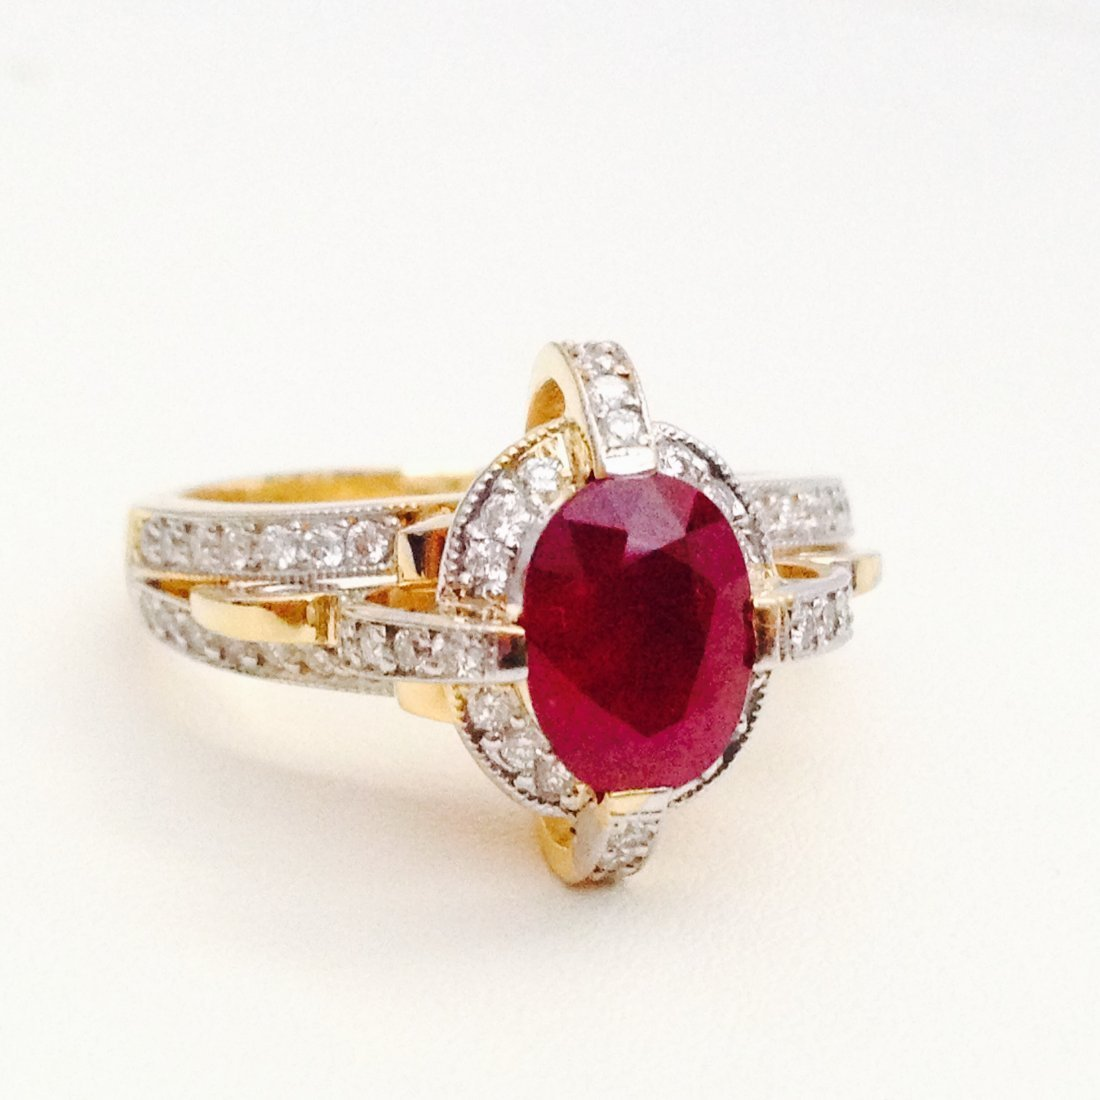 18K GOLD DIAMOND AND 100%NATURAL RED RUBY